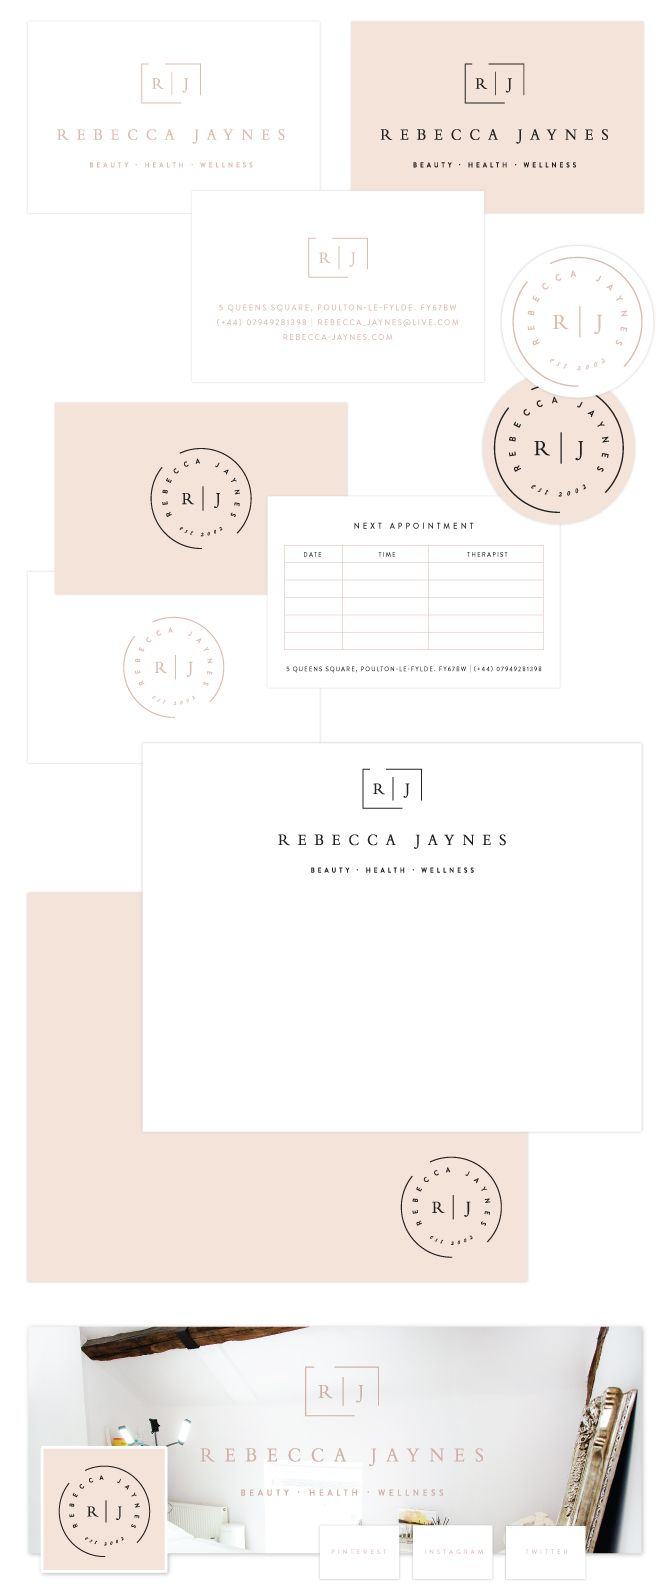 rebecca jaynes beauty salon brand design by salted ink